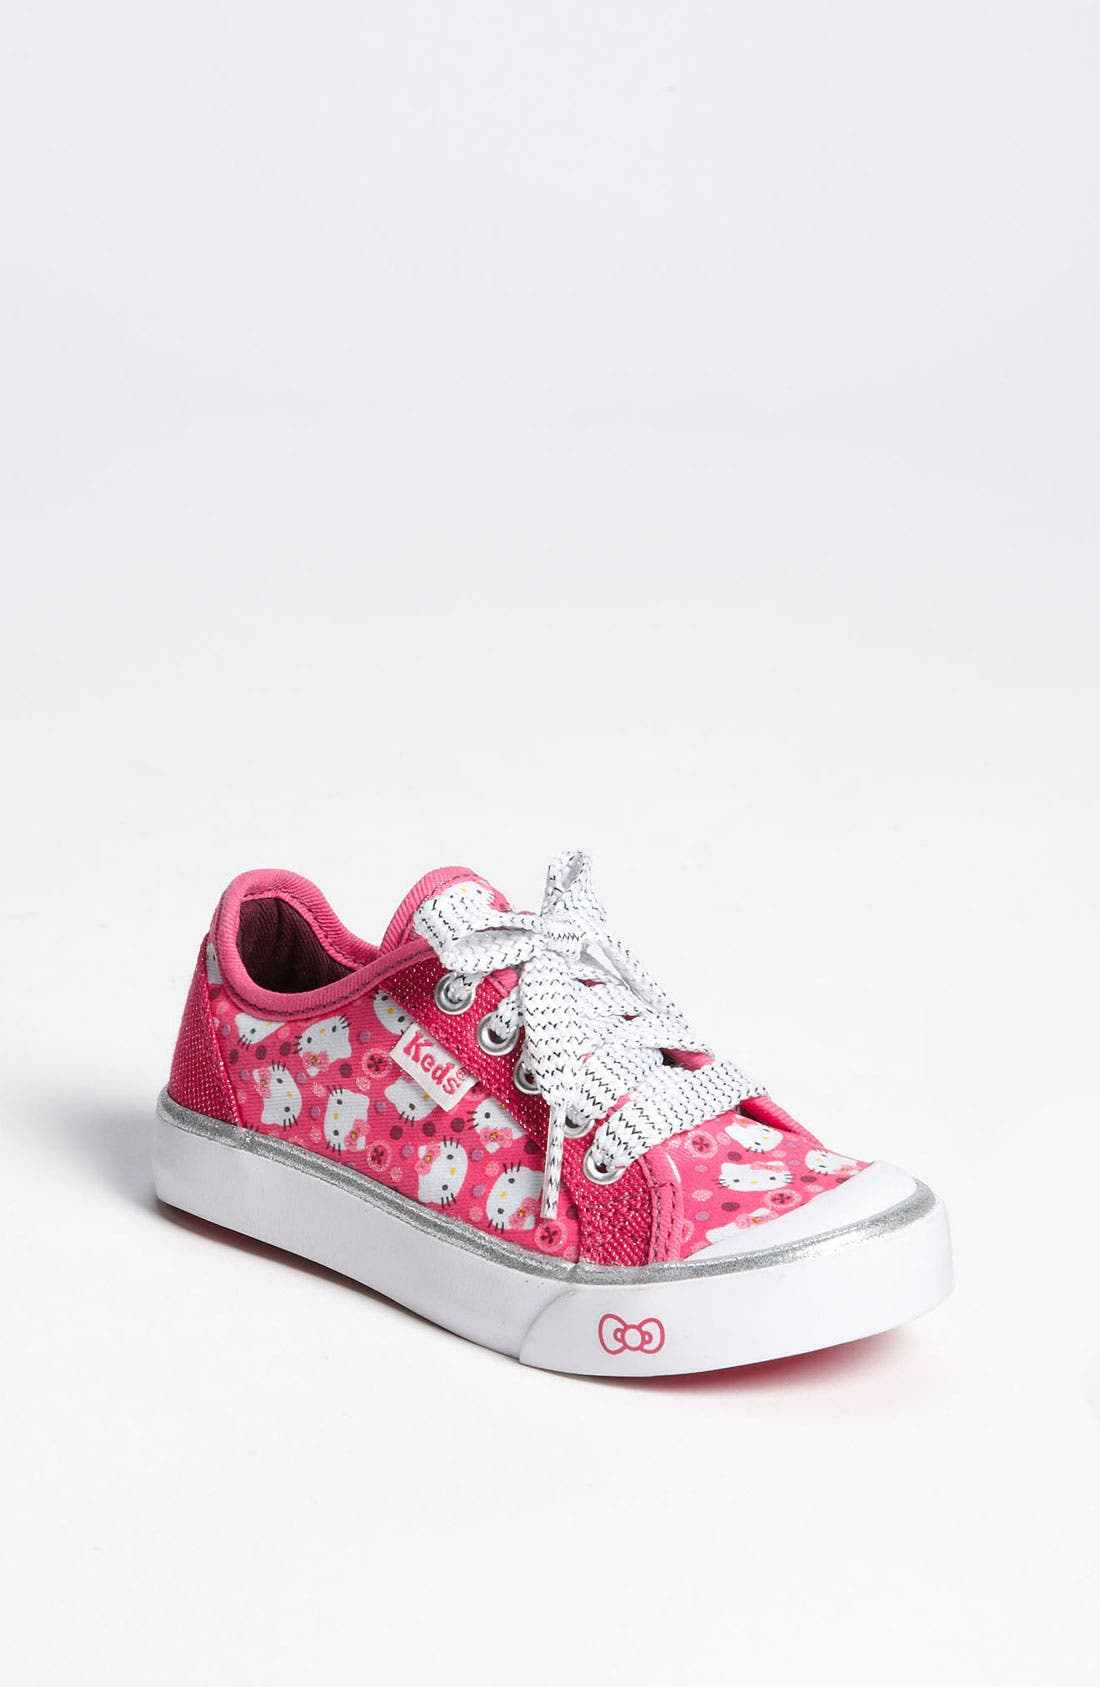 Main Image - Keds® 'Mimmy' Sneaker (Walker & Toddler)